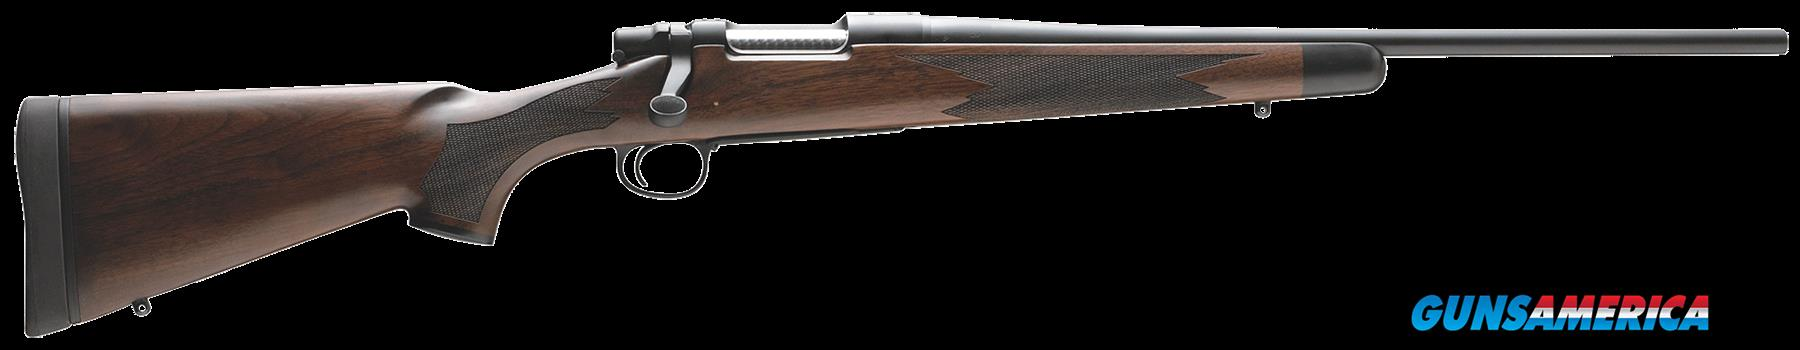 "Remington Firearms 26417 Seven CDL Bolt 243 Win 20"" 4+1 American Walnut Stk Blued  Guns > Rifles > Remington Rifles - Modern > Bolt Action Non-Model 700"